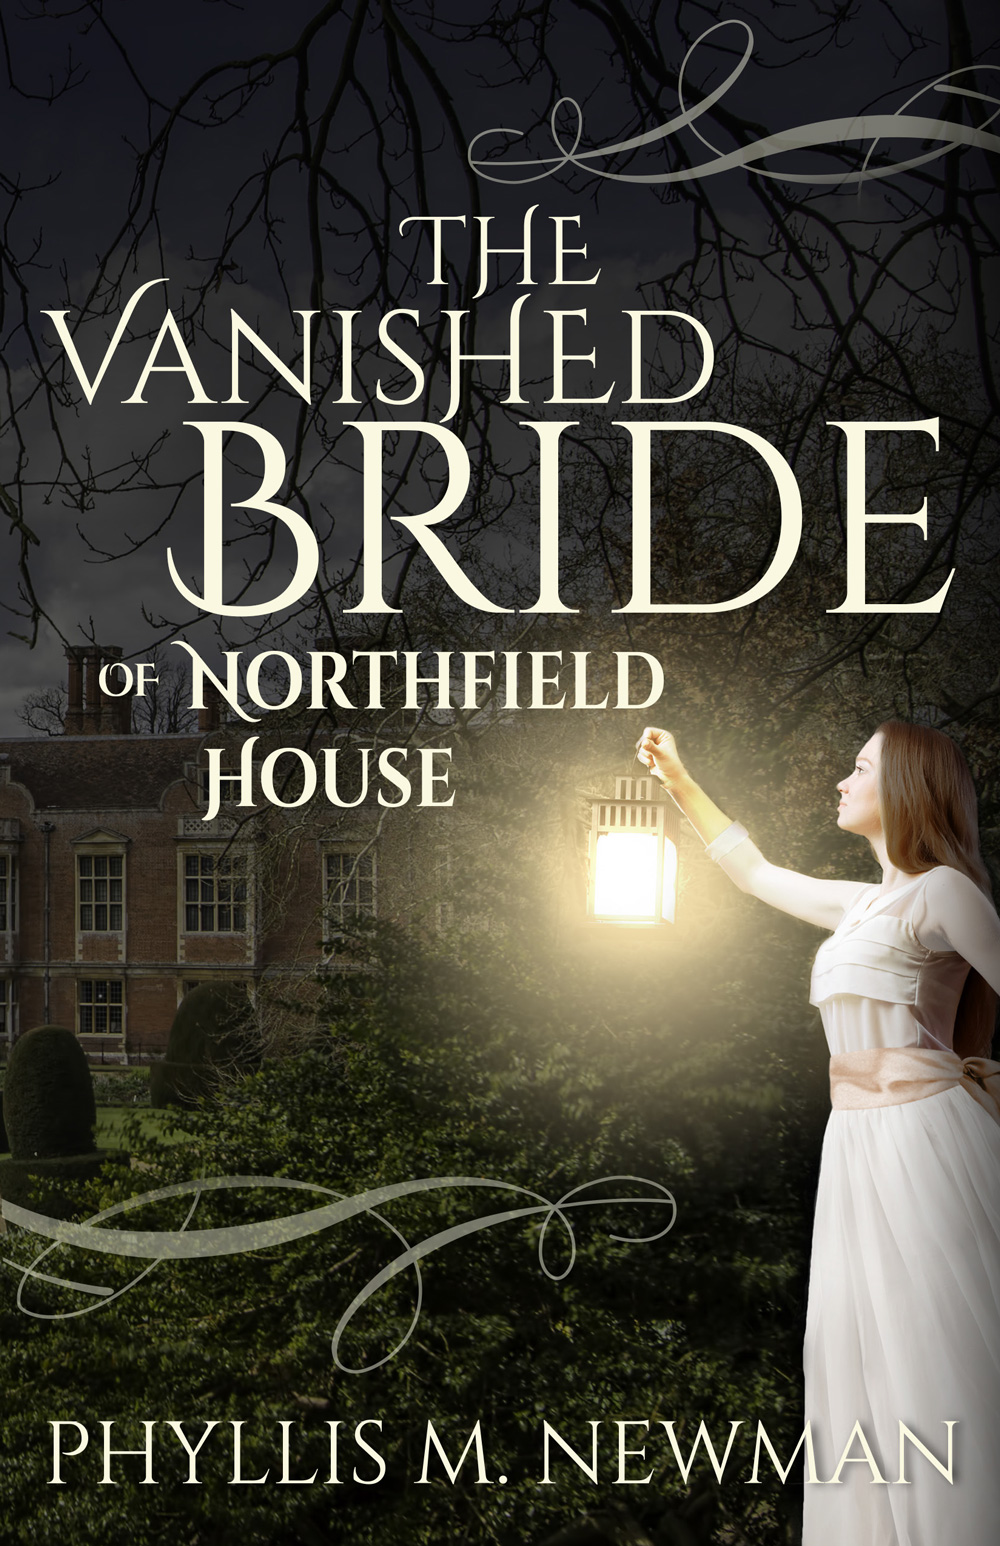 TheVanishedBride FrontCover FINAL RGB.jpg